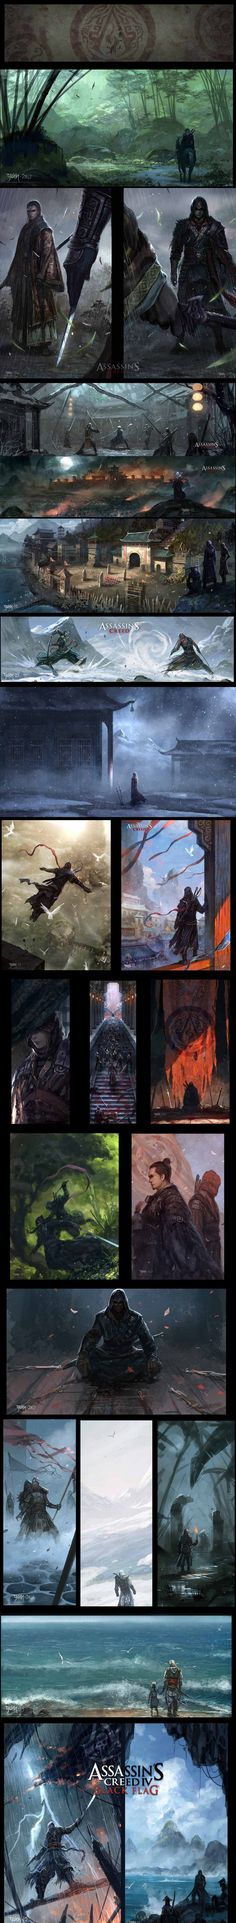 Assassin's Creed Series by ChaoyuanXu on deviantART